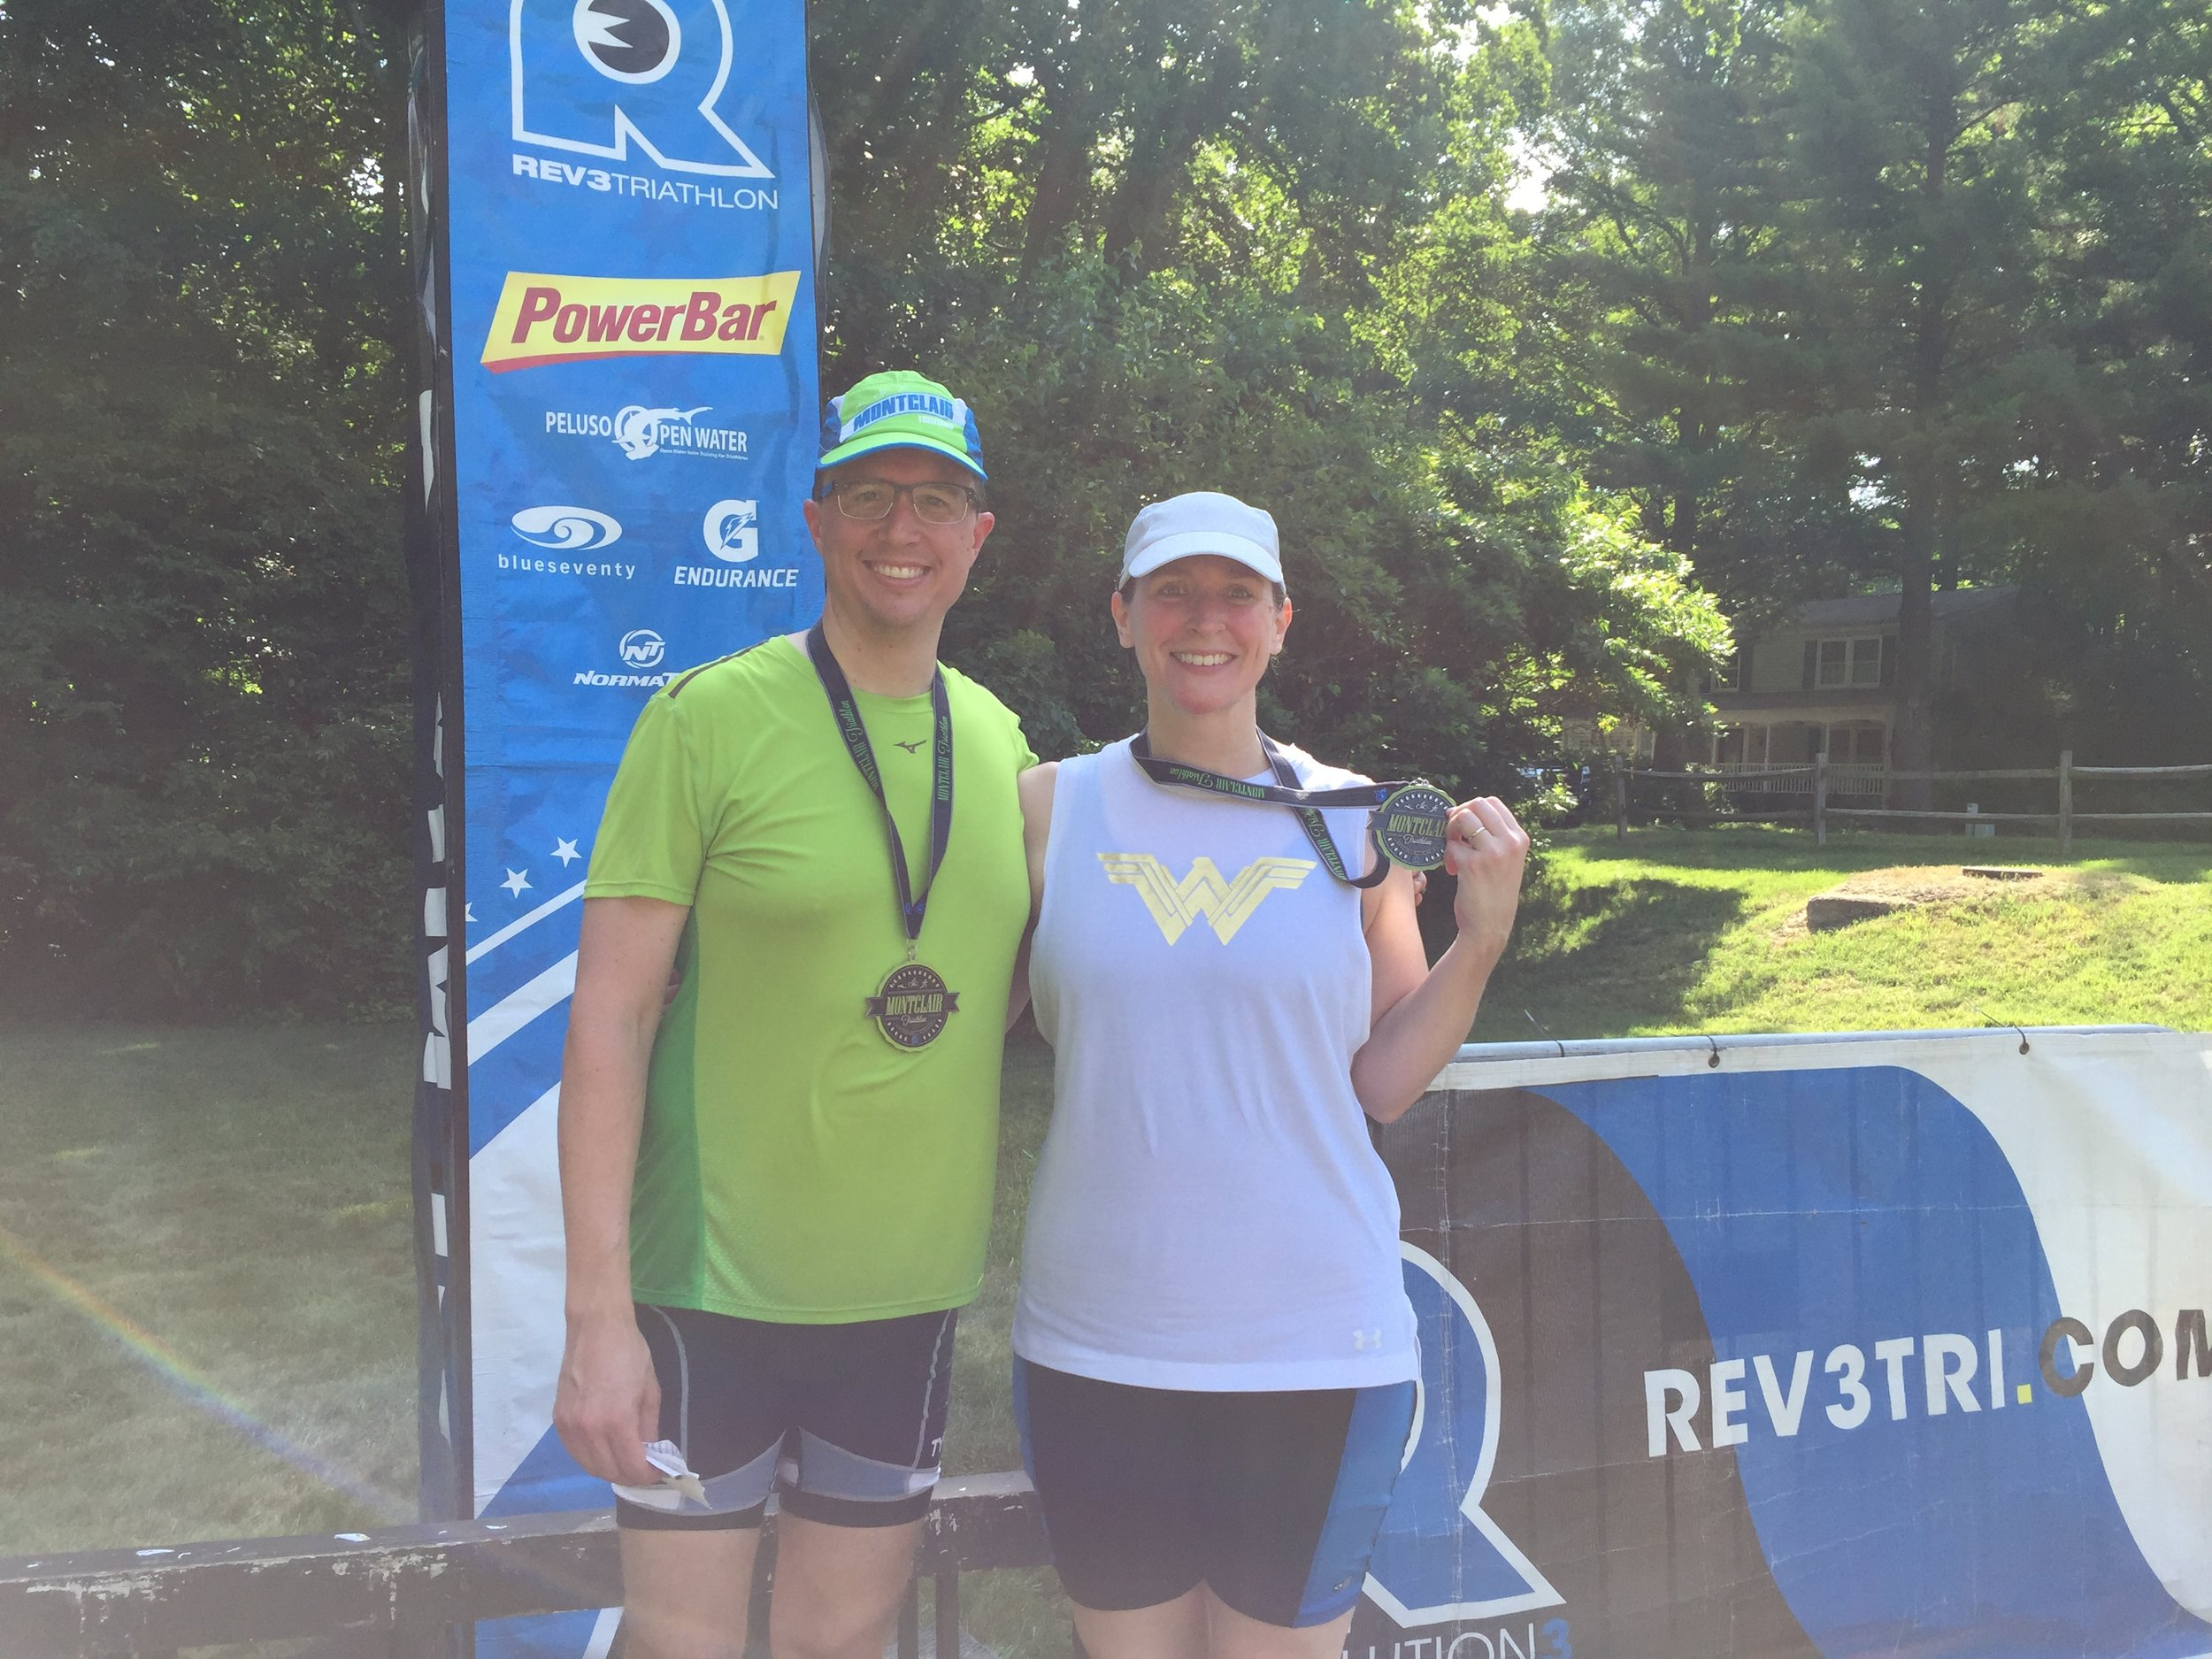 72f82488a4789 Yesterday Robert and I competed in the Montclair Sprint Triathlon, my  second sprint tri and his first.